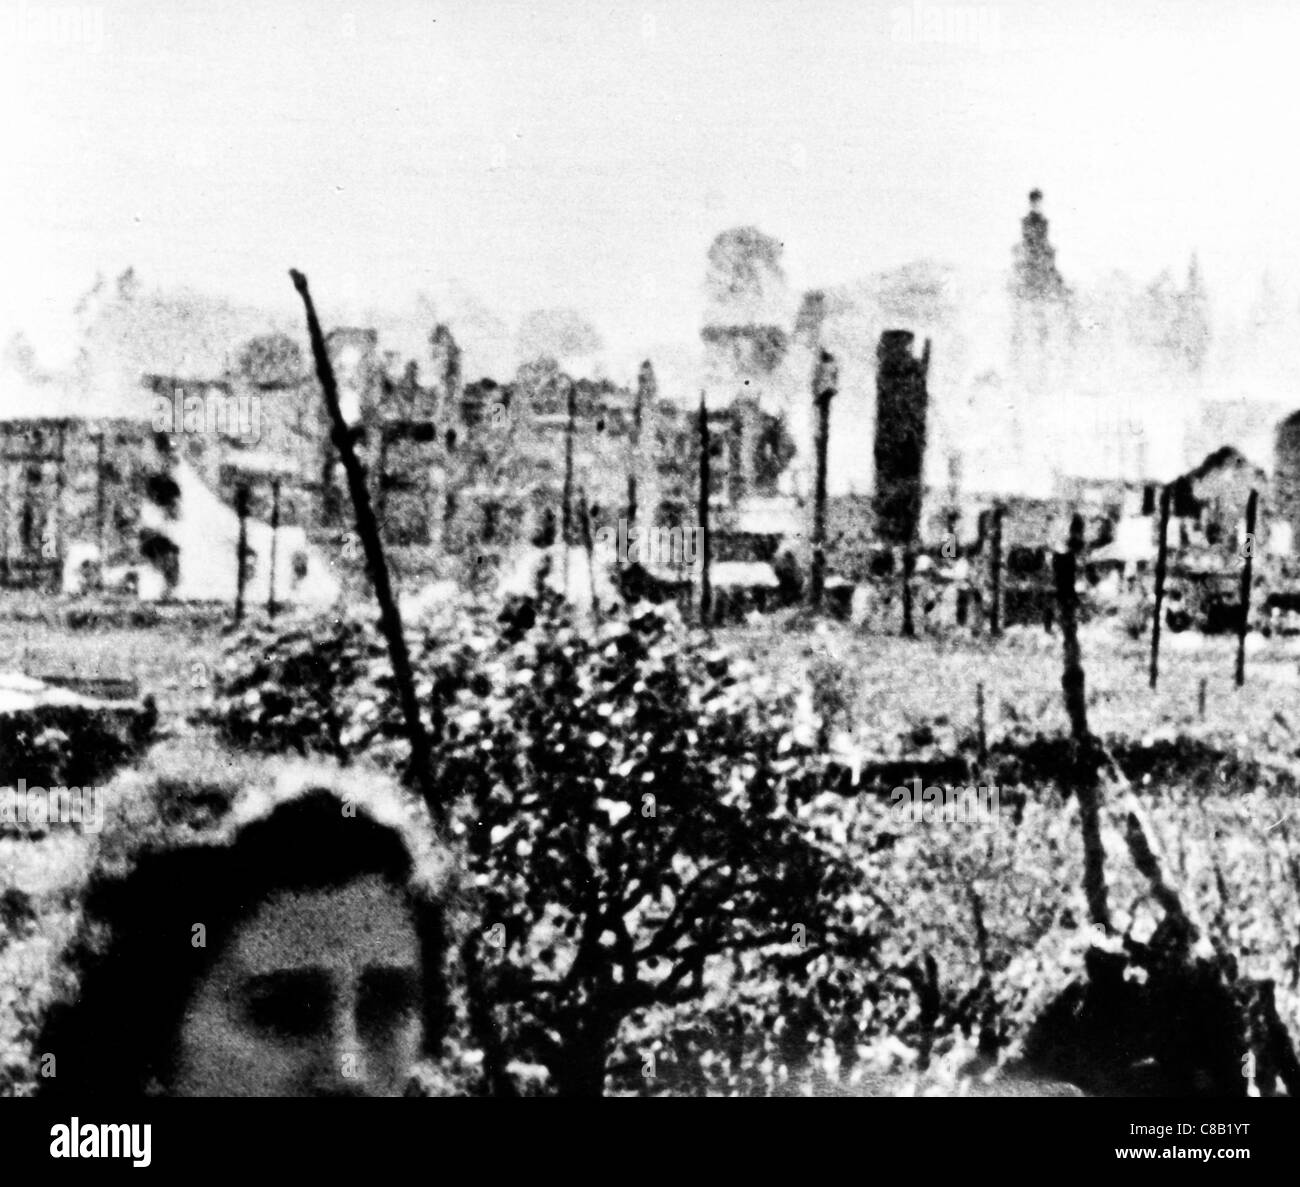 the bombing of Guernica,the Spanish Civil War,1936 - Stock Image